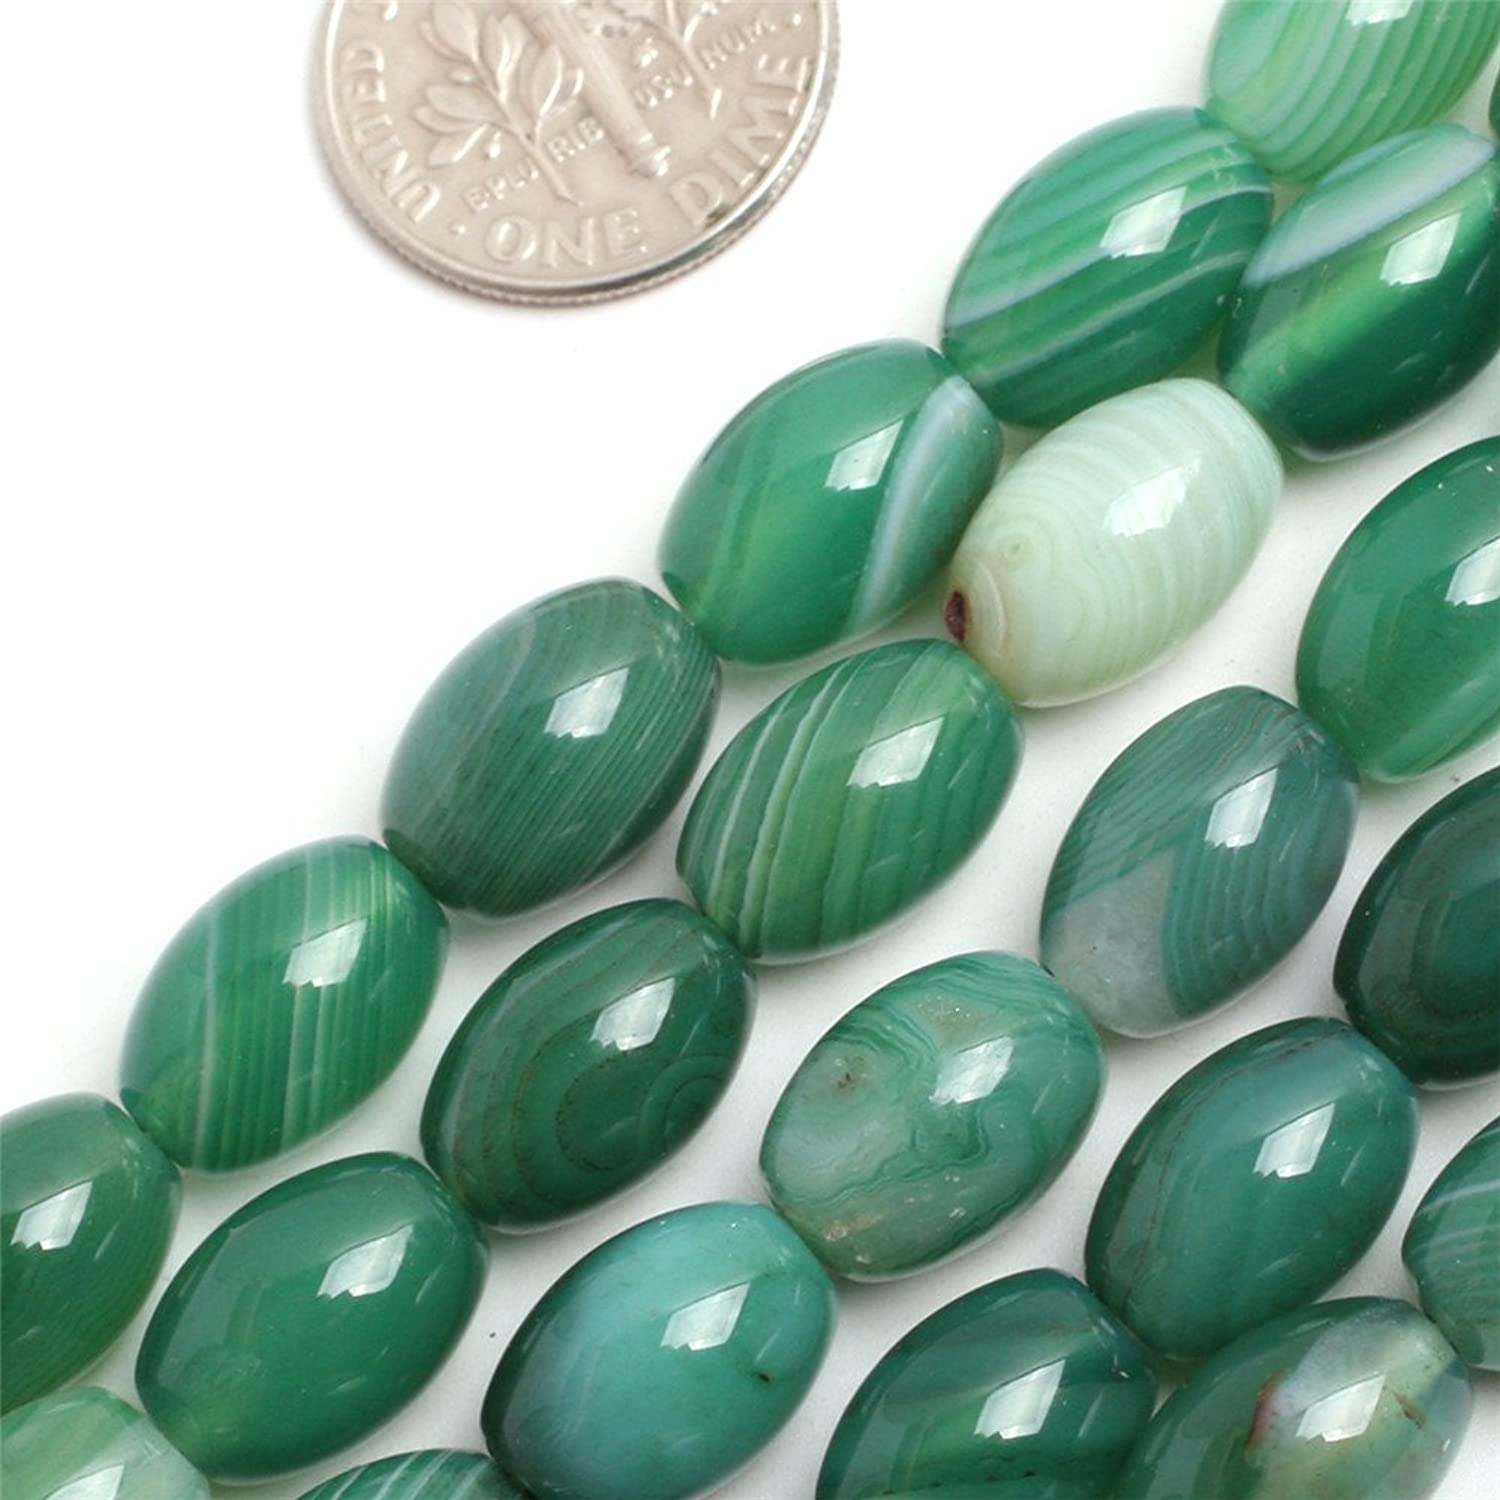 GEM-inside Green Agate Gemstone Loose Beads Natural 8x12mm Crystal Energy Stone Power For Jewelry Making 15''